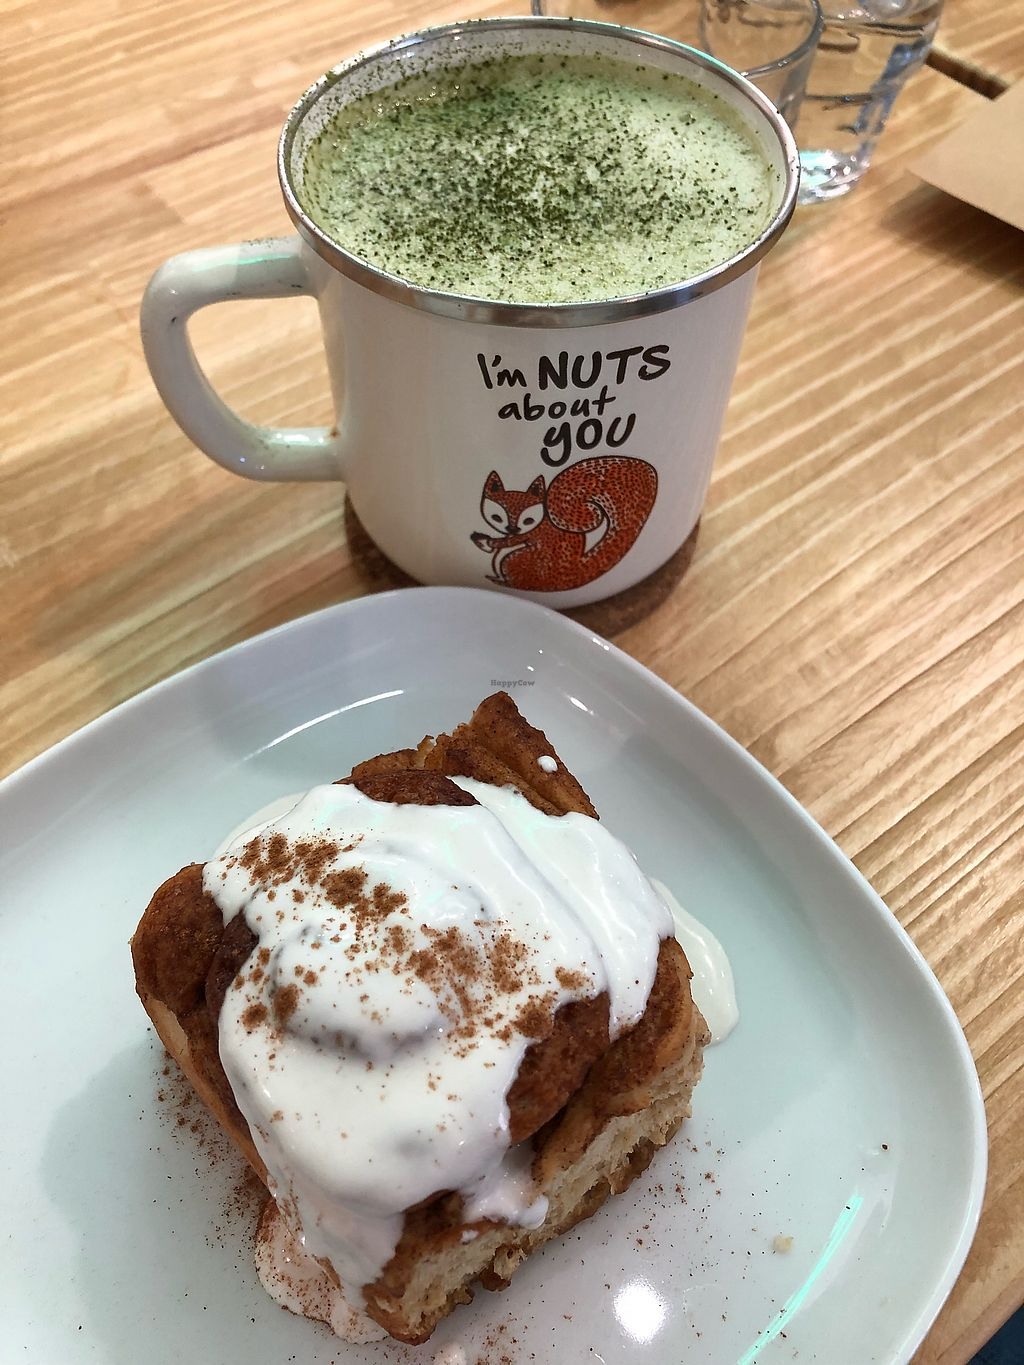 """Photo of Ooh Cha Cha Tech  by <a href=""""/members/profile/HaileyPoLa"""">HaileyPoLa</a> <br/>Cinnamon roll and matcha latte  <br/> March 18, 2018  - <a href='/contact/abuse/image/110310/372286'>Report</a>"""